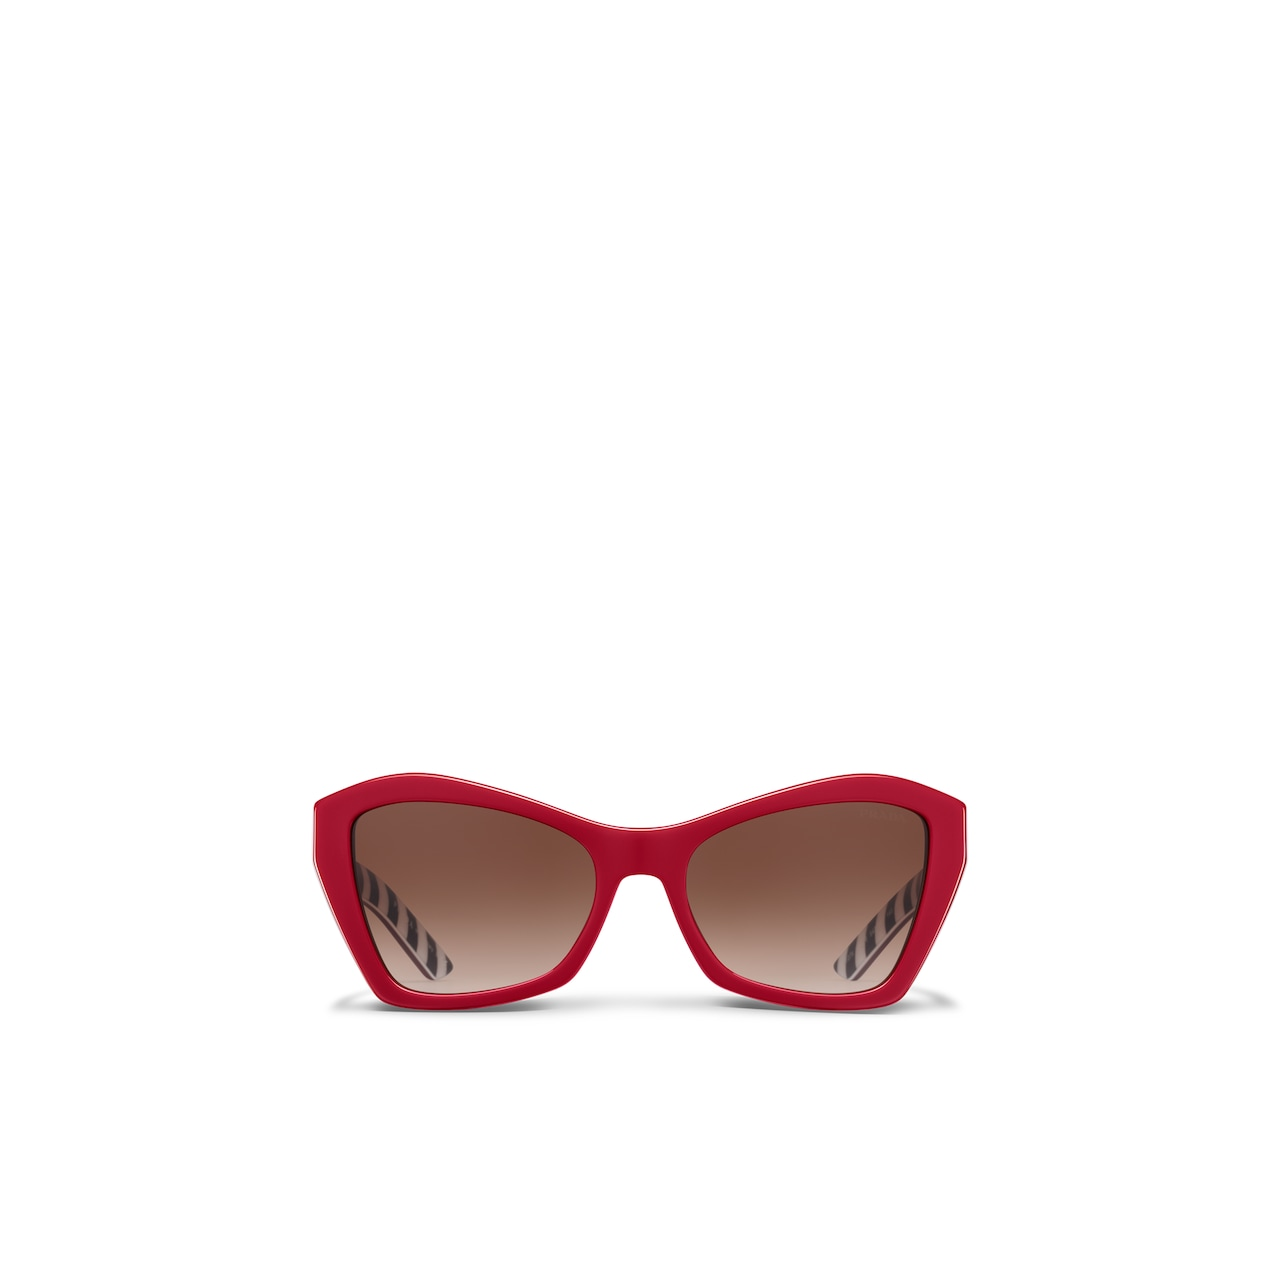 Prada Prada Disguise sunglasses Alternative fit 1